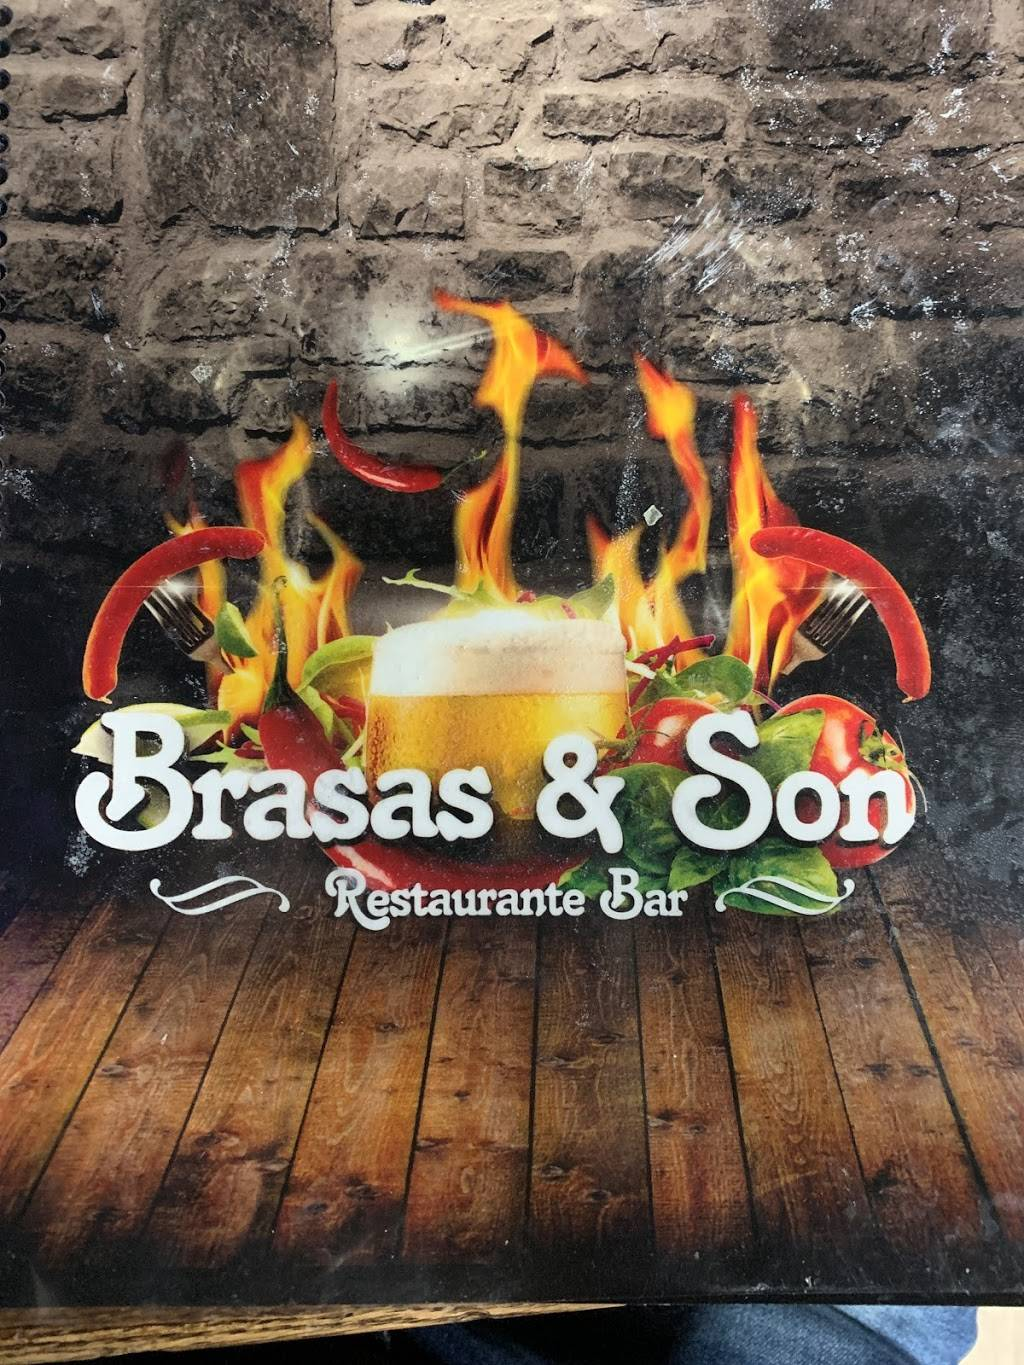 Brasas & Son | restaurant | 6406 Old Pineville Rd, Charlotte, NC 28217, USA | 9802019007 OR +1 980-201-9007